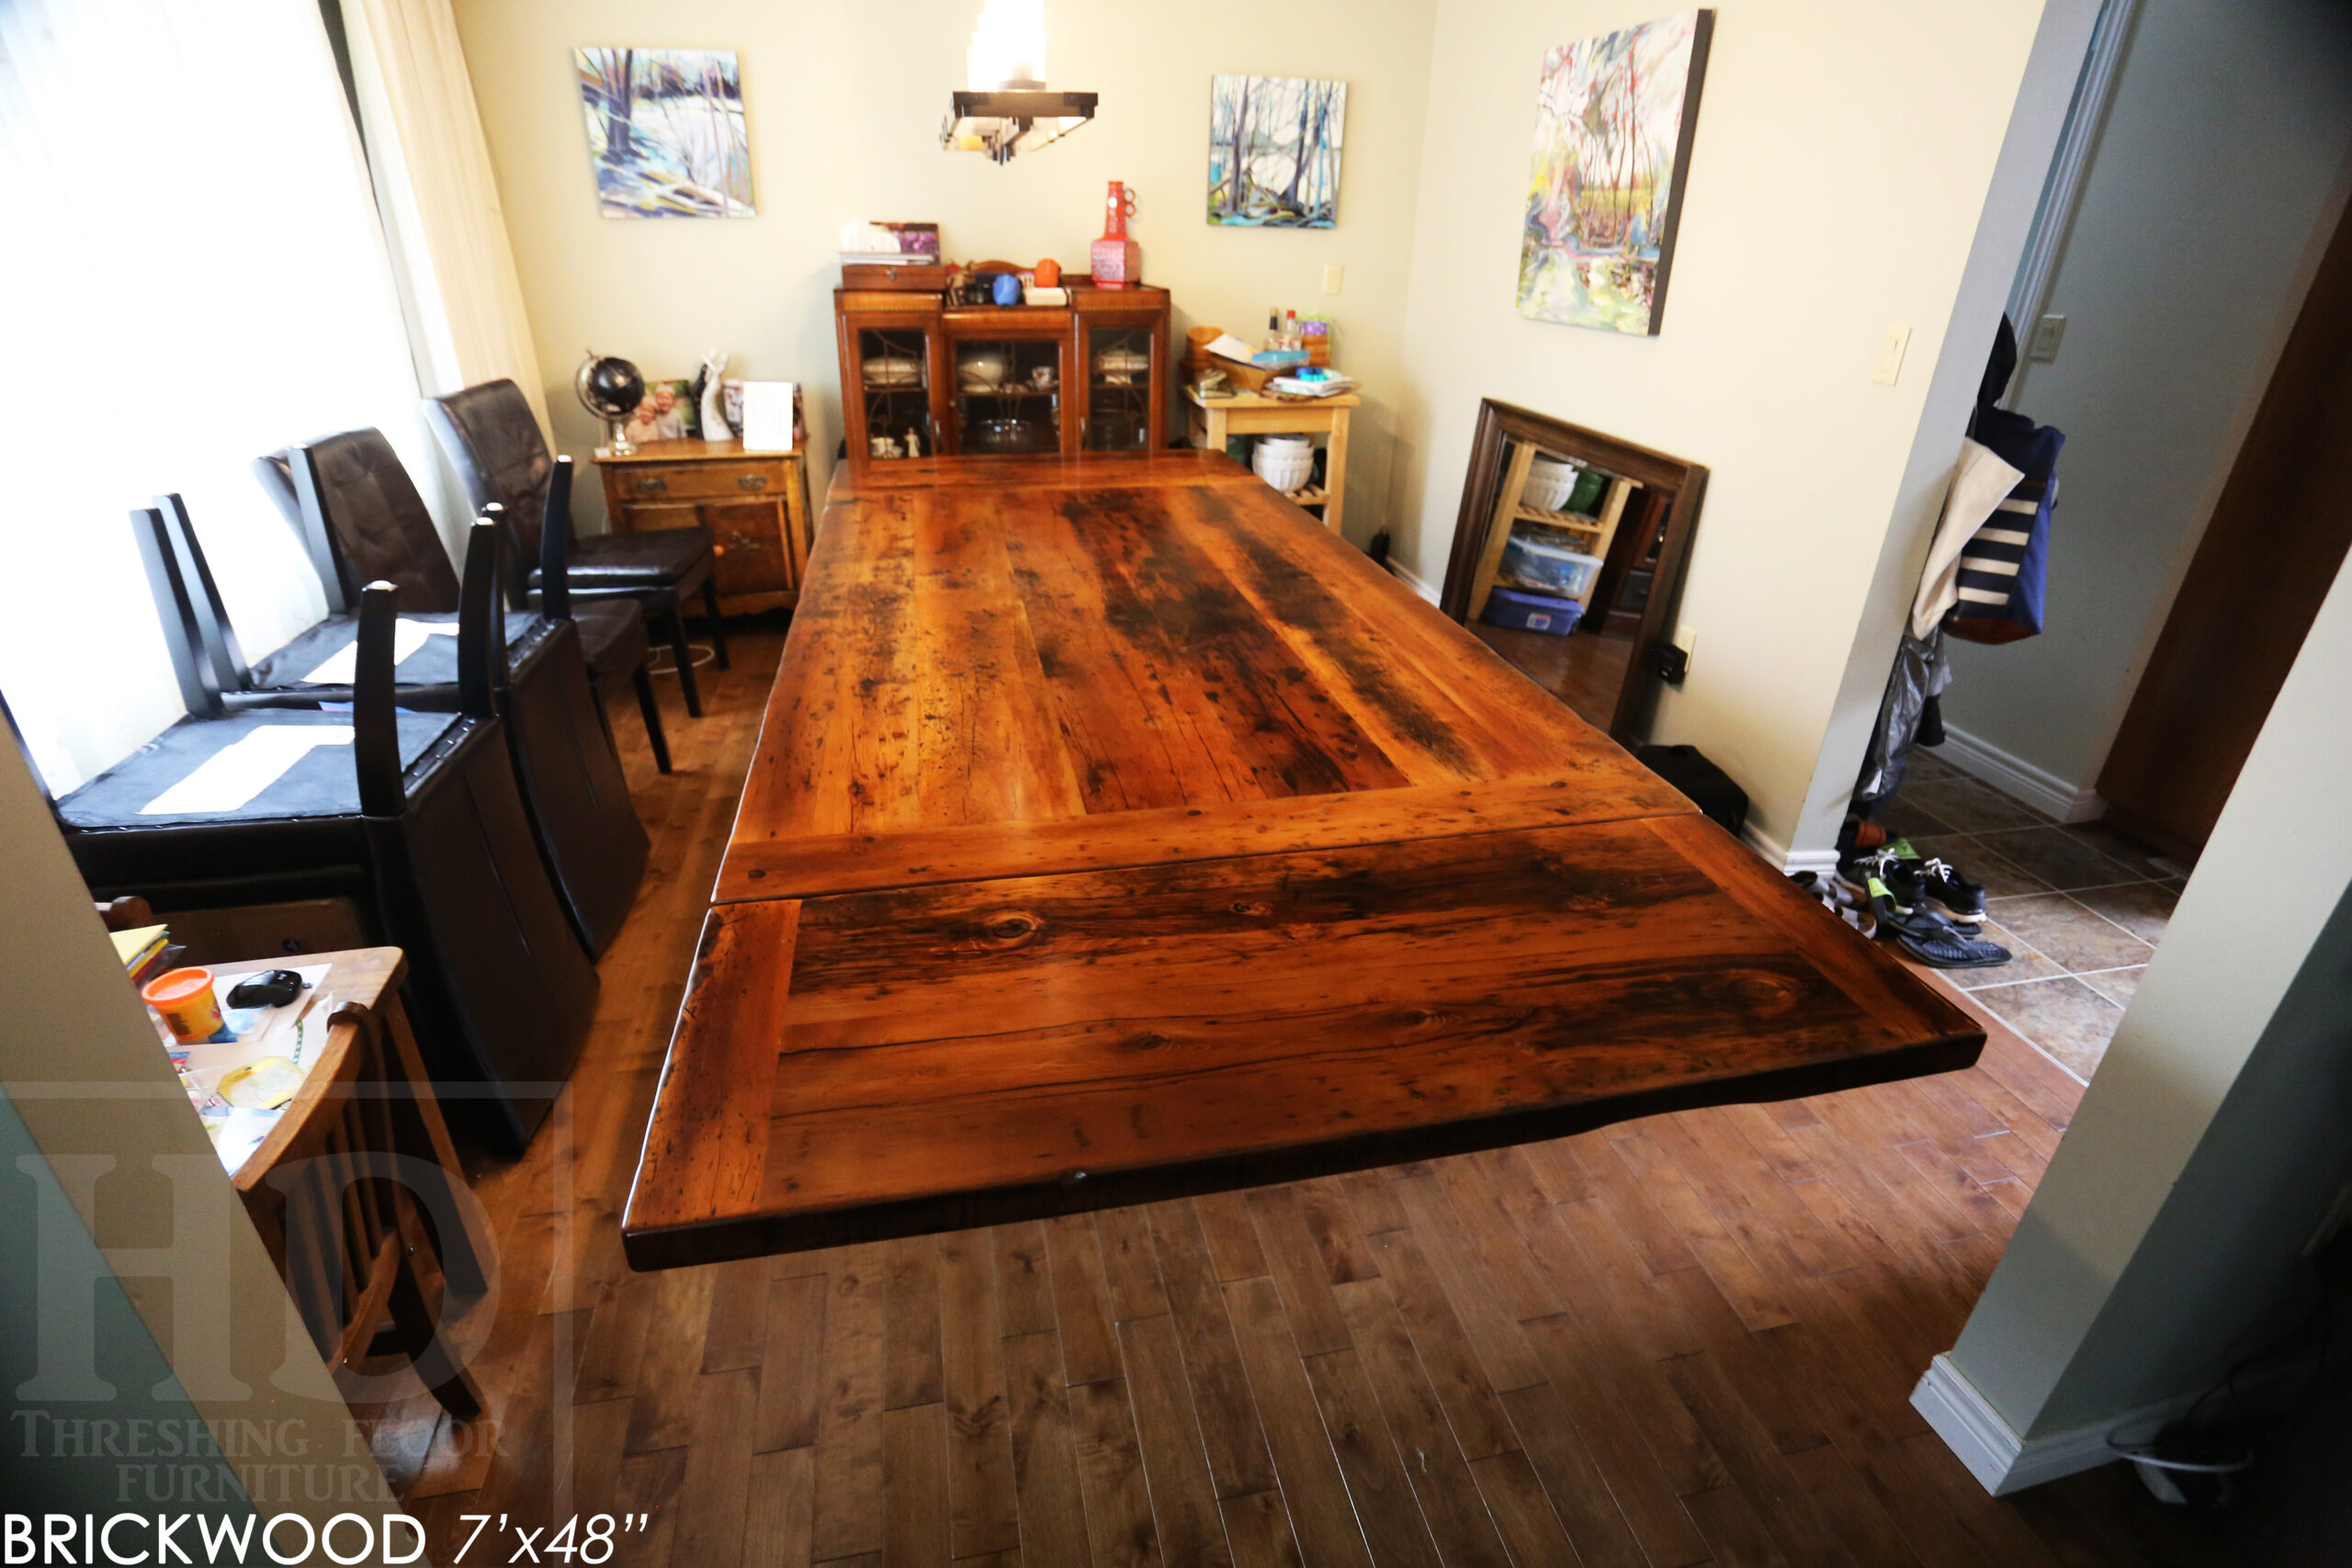 """7' Ontario barnwood trestle table we made for an Ingersoll, ON company - 48"""" wide - 2"""" Hemlock Threshing Floor Construction - Original edges & distressing maintained - Premium epoxy + satin polyurethane finish - Two 18"""" leaf extensions [making total length 10' when extended] - www.table.ca"""